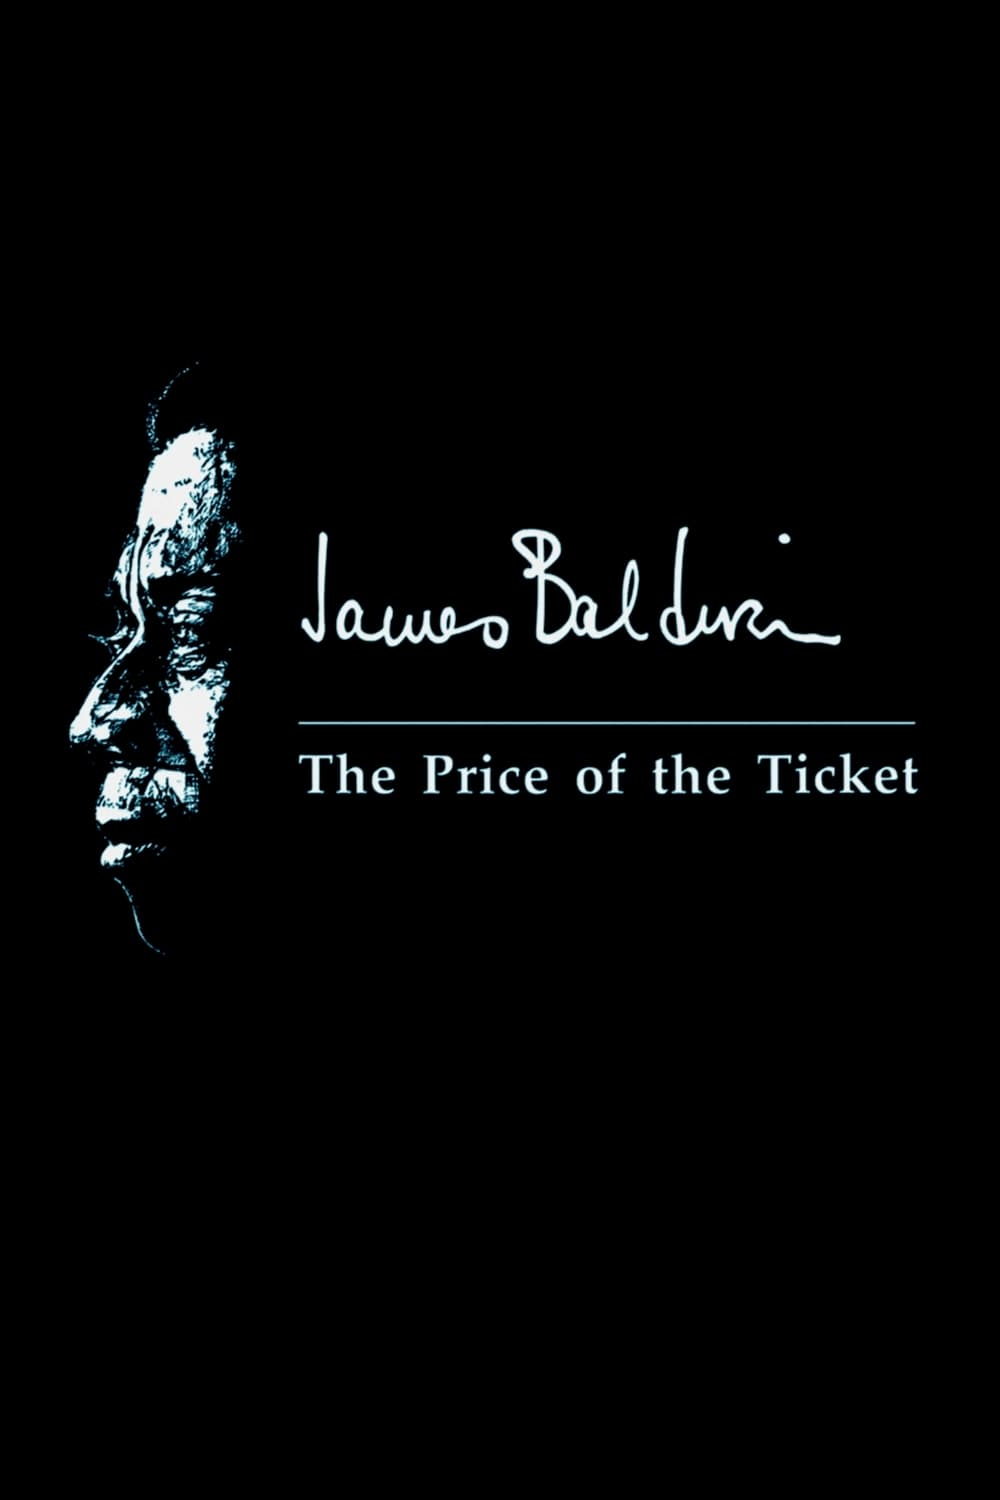 James Baldwin: The Price of the Ticket